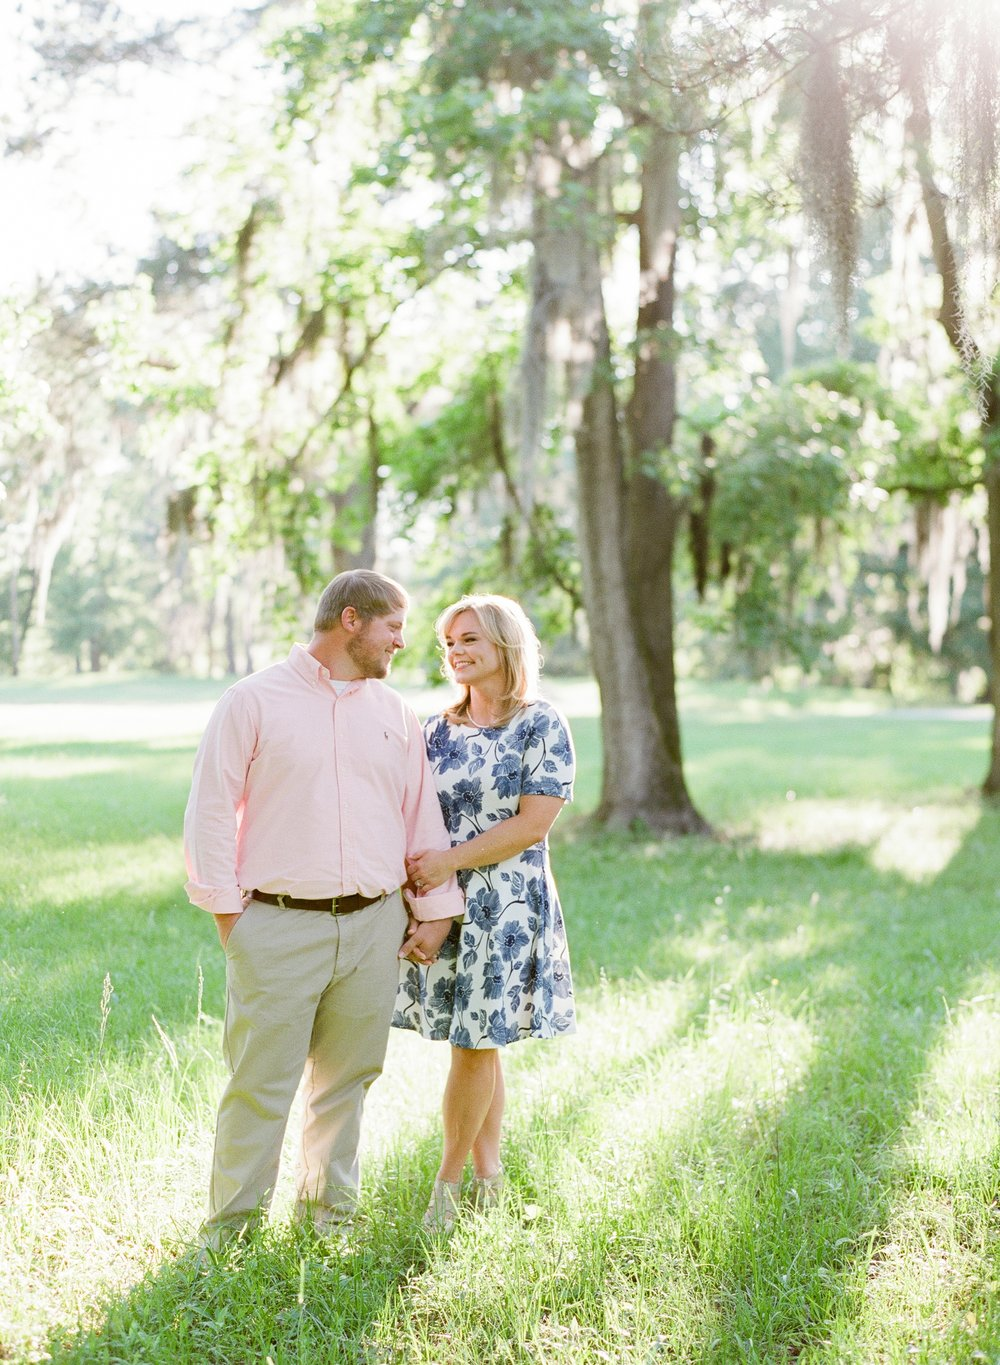 Beautiful Engagement Session on Fuji 400h Film with Contax 645